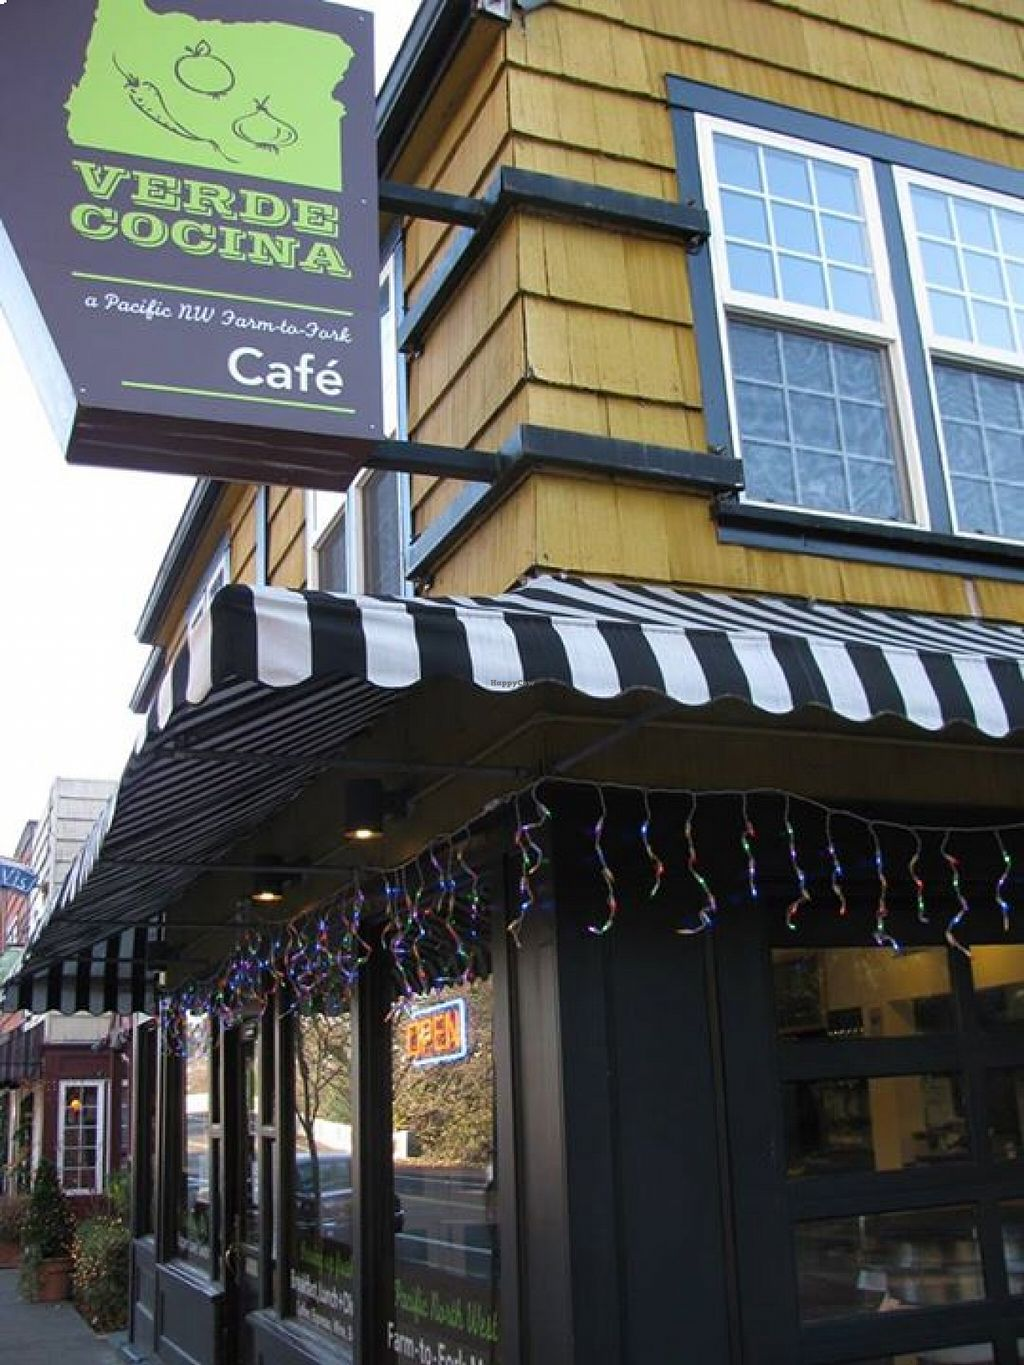 "Photo of Verde Cocina  by <a href=""/members/profile/community"">community</a> <br/>Verde Cocina <br/> August 18, 2015  - <a href='/contact/abuse/image/61717/114187'>Report</a>"